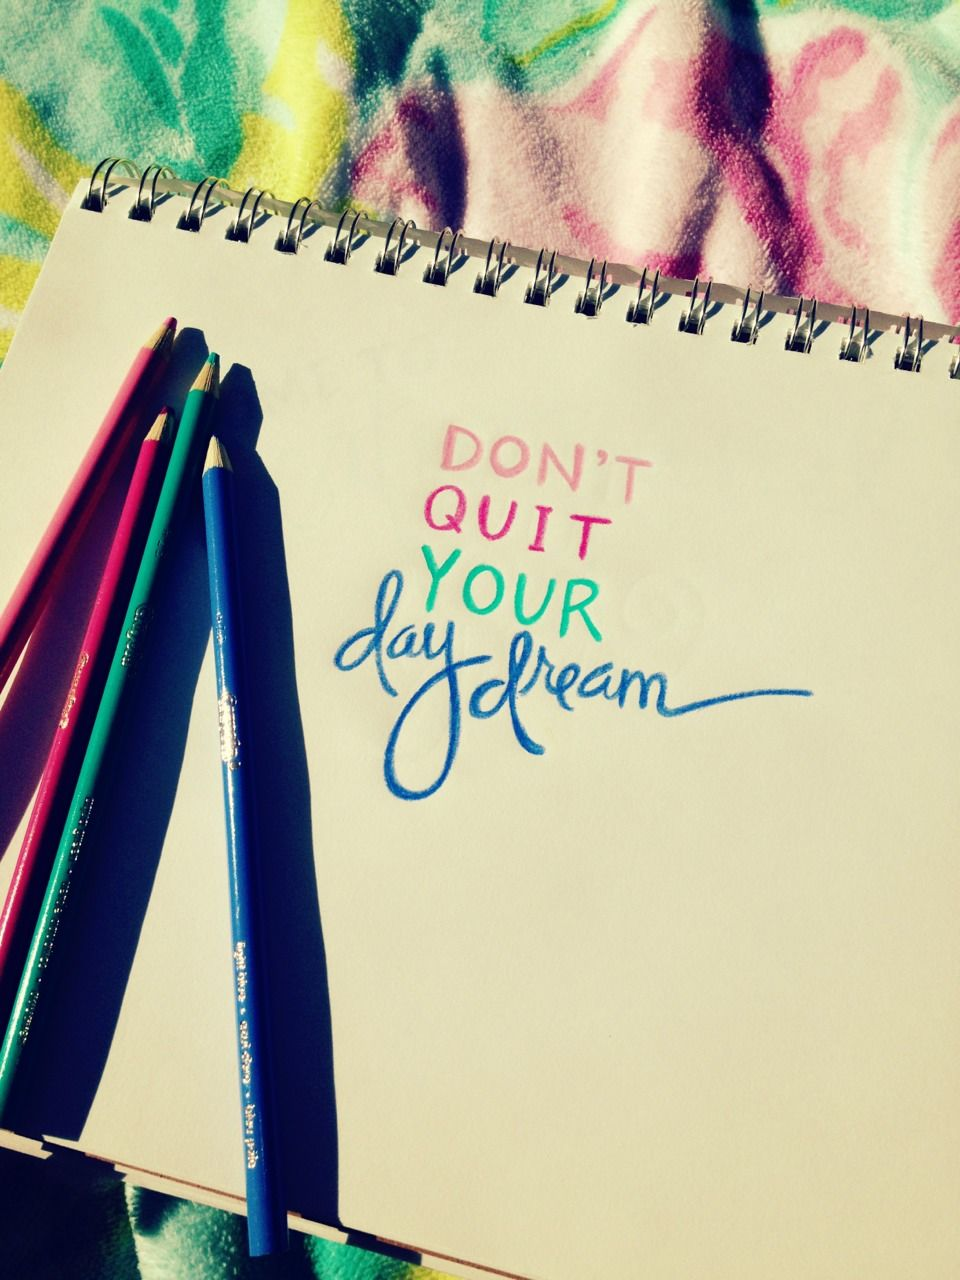 Inspiring Quotes For Friends Don't Quit Your Daydre...